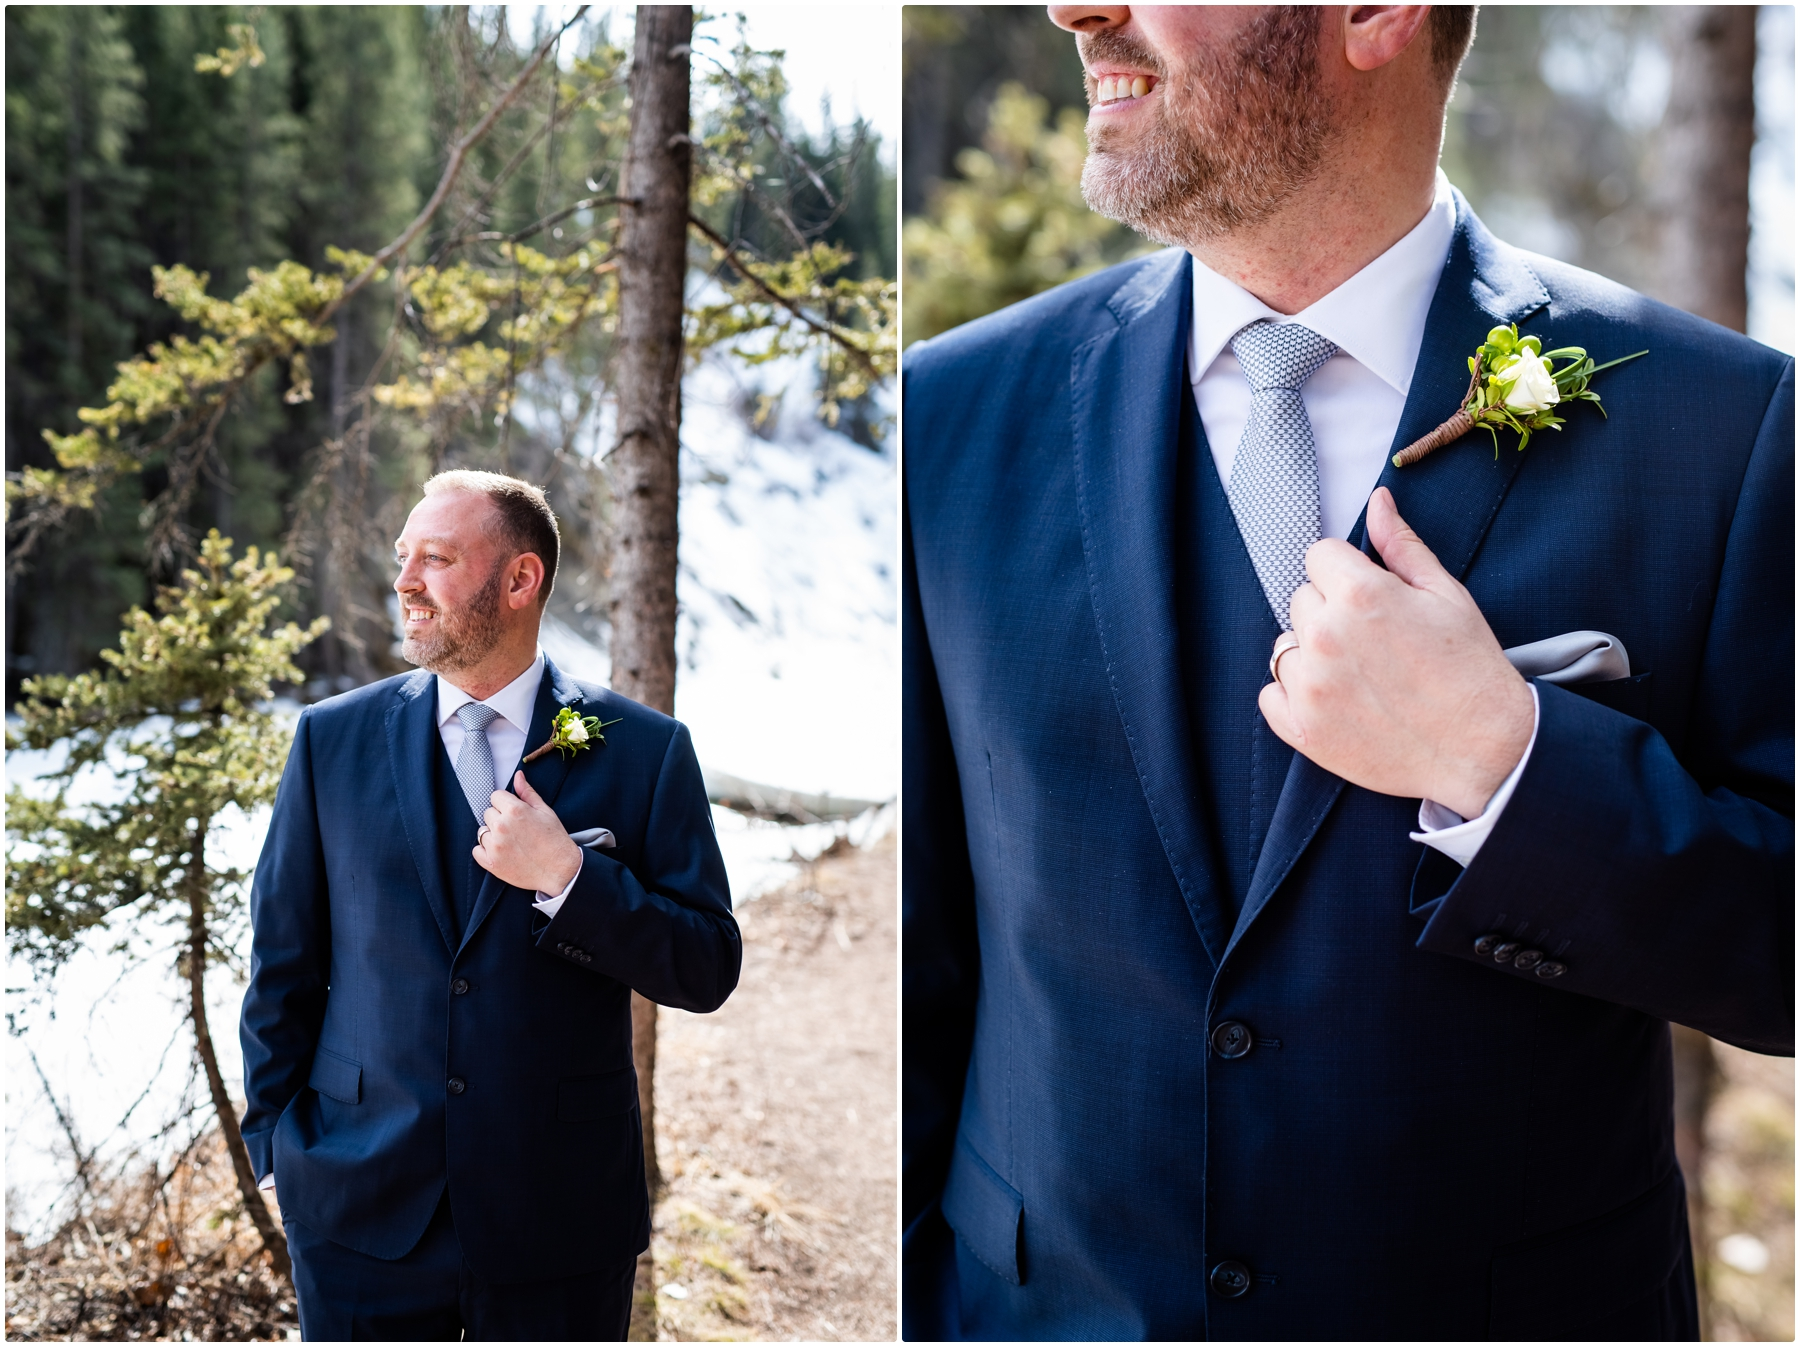 Groom Wedding Photography Portraits Calgary